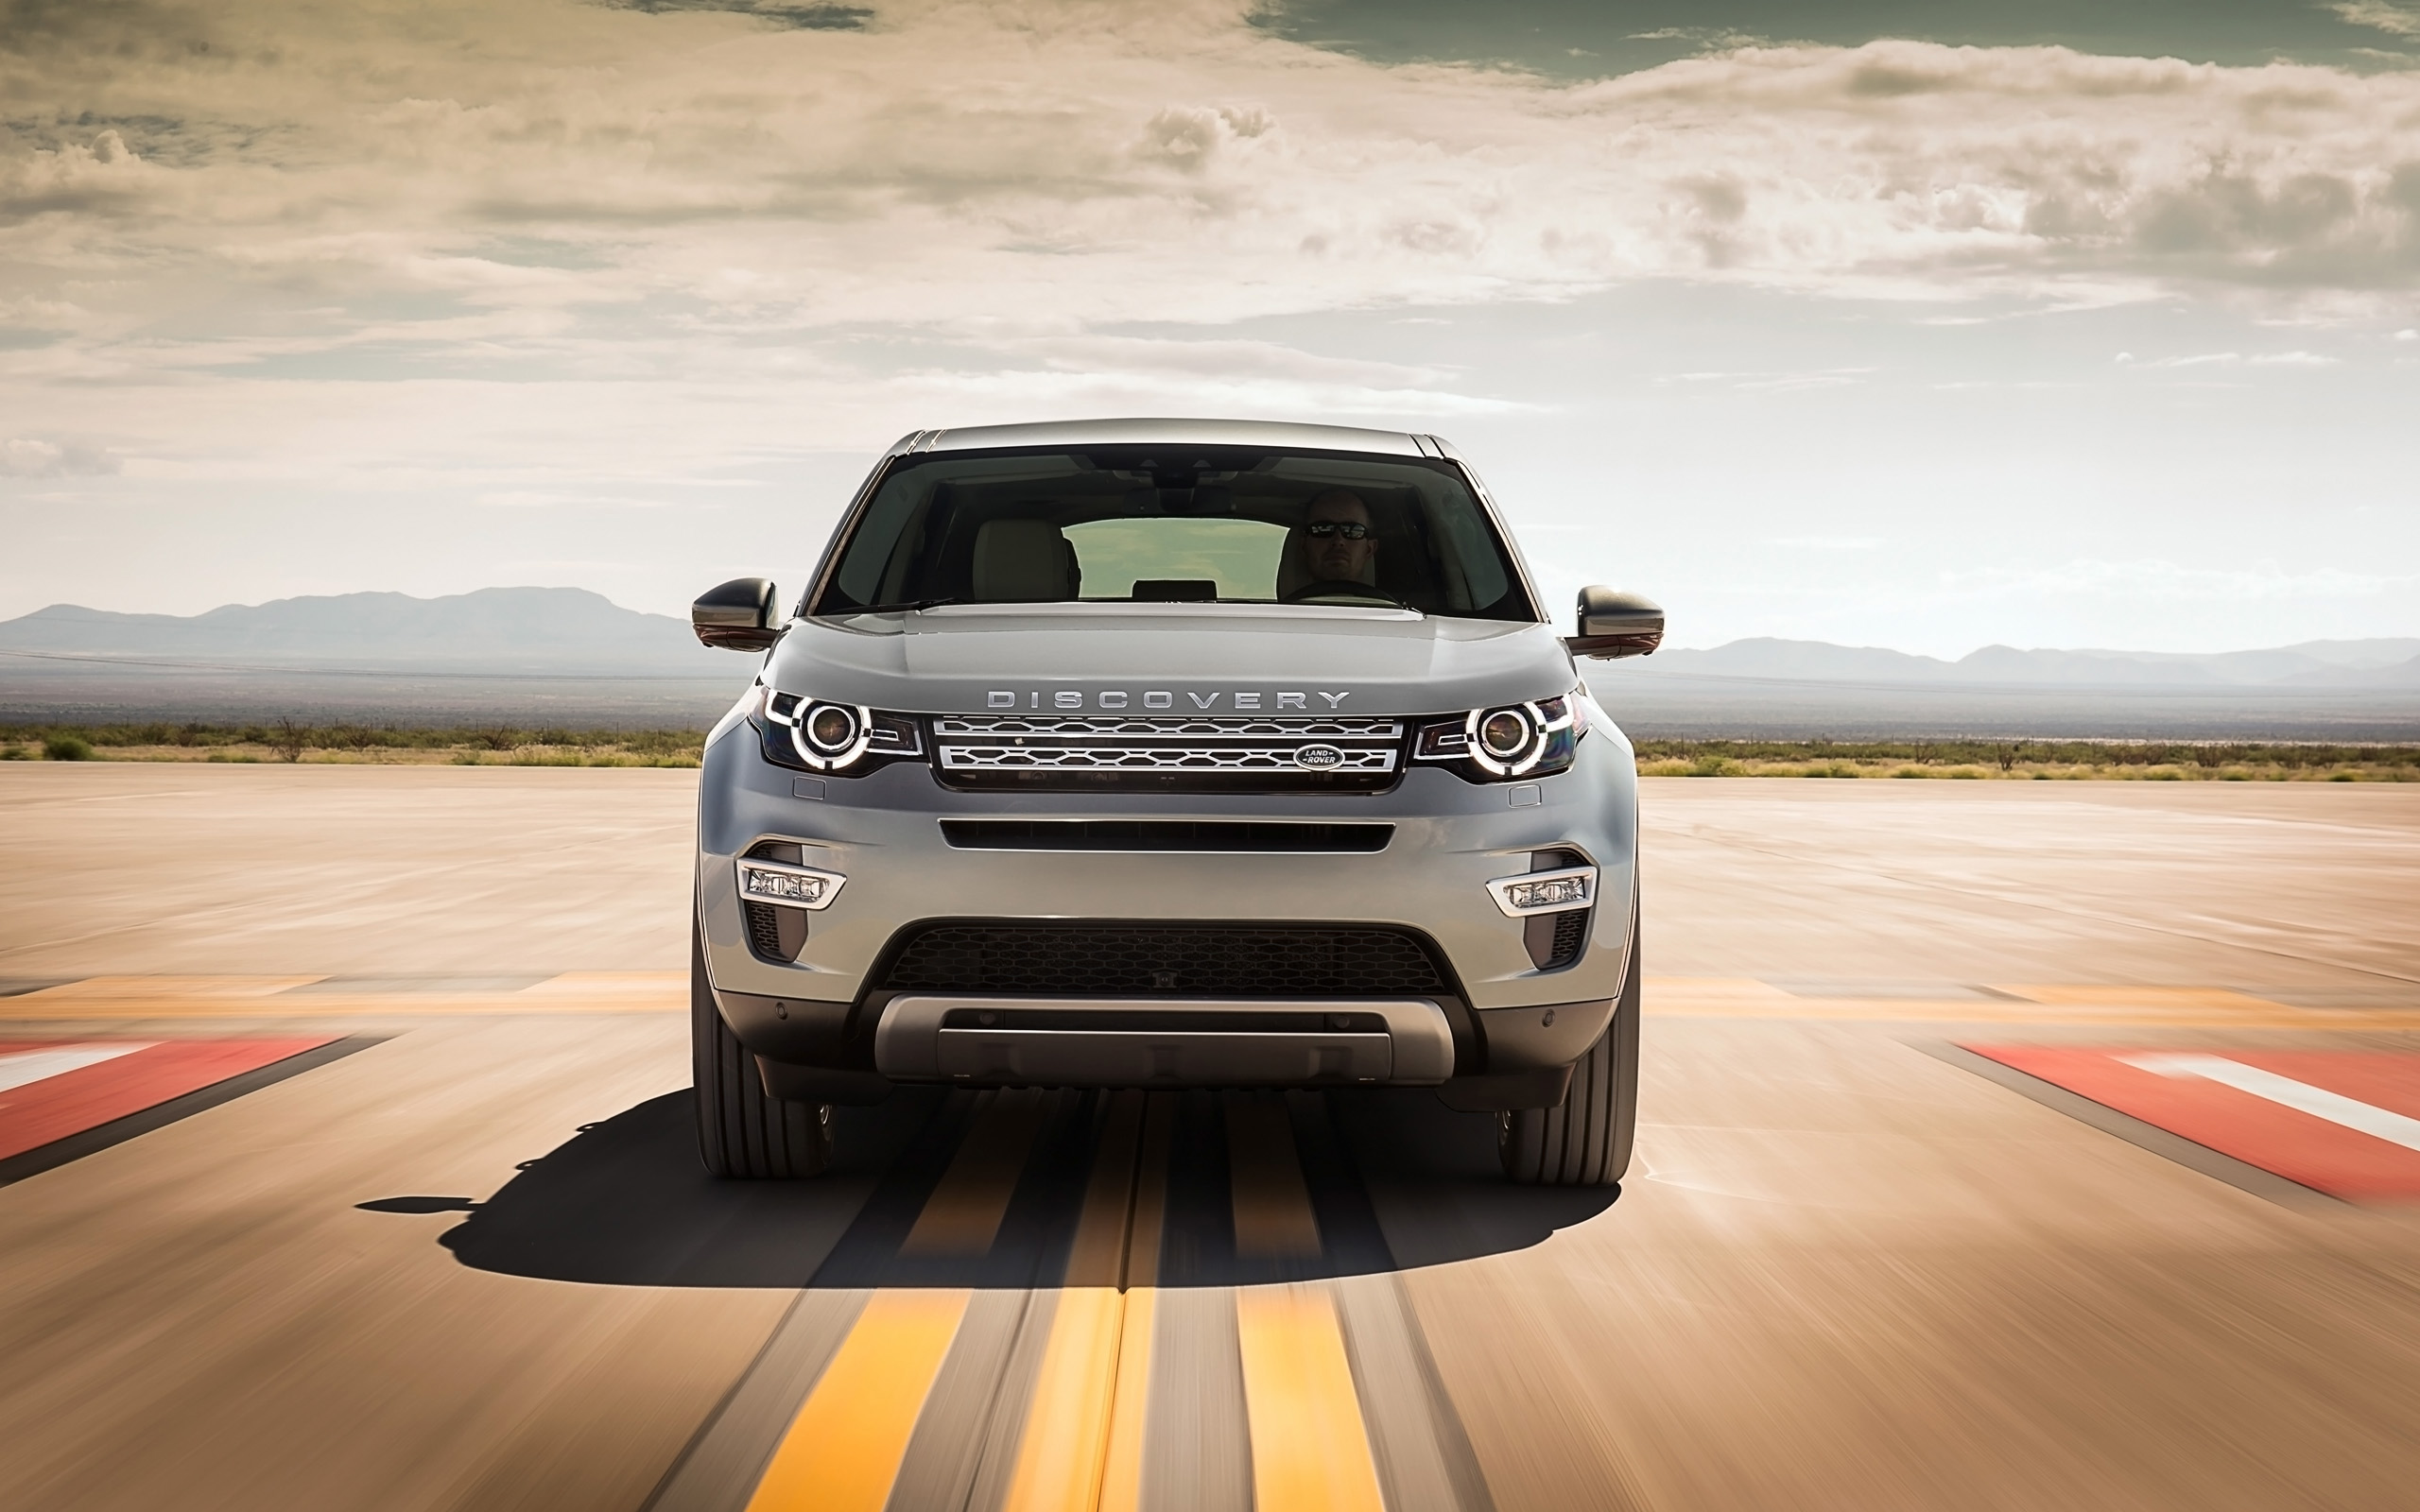 Wallpaper Land Rover Discovery Sport: 2015 Land Rover Discovery Sport 2 Wallpaper